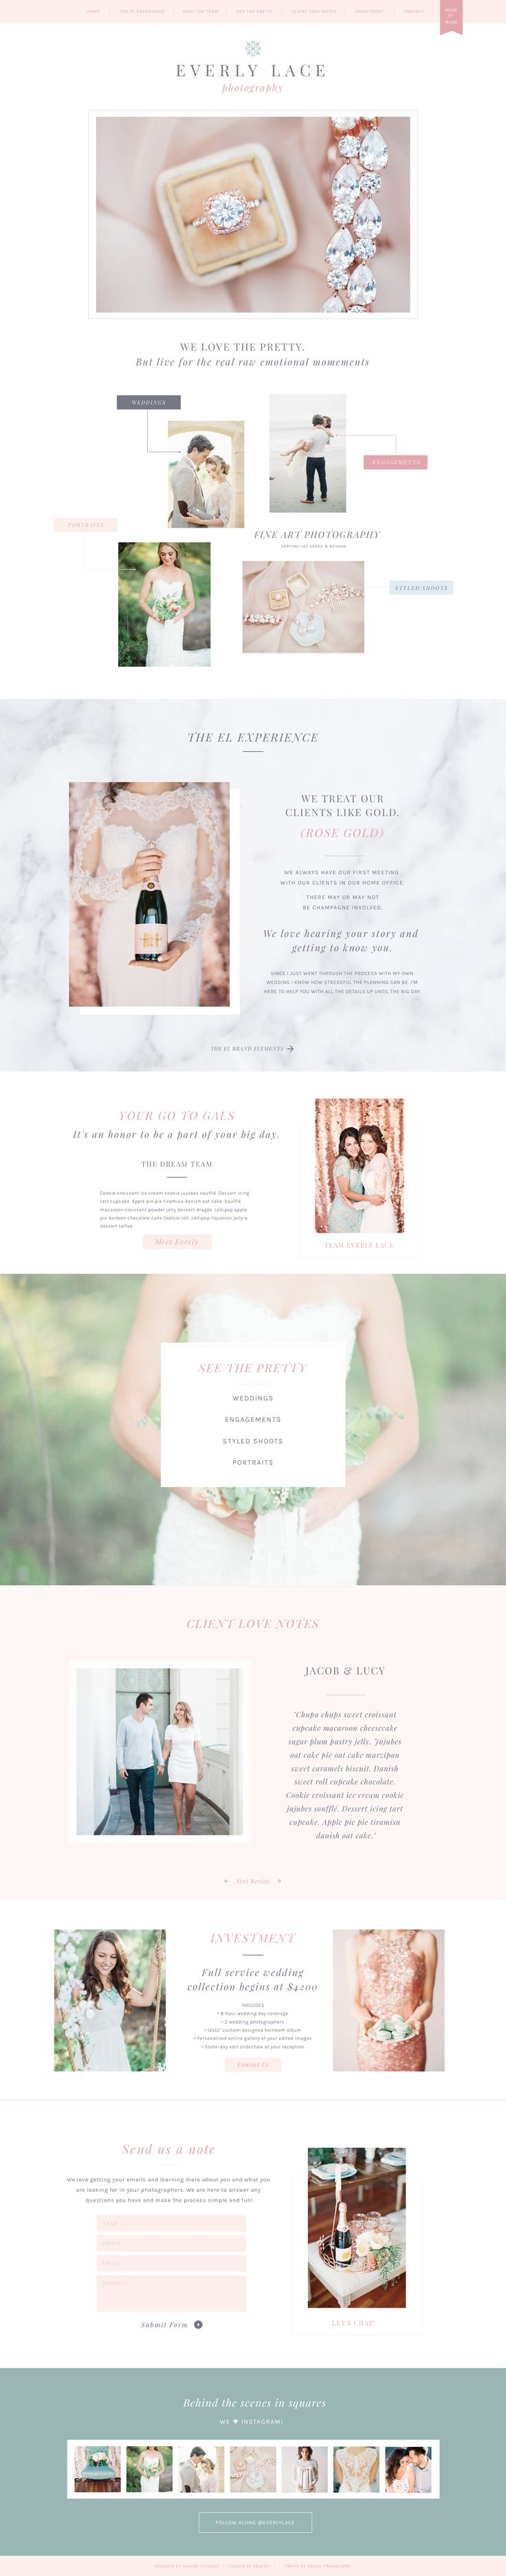 Everly Showit 5 Website for Photographers + Creatives. Designed by Seaside Creative.